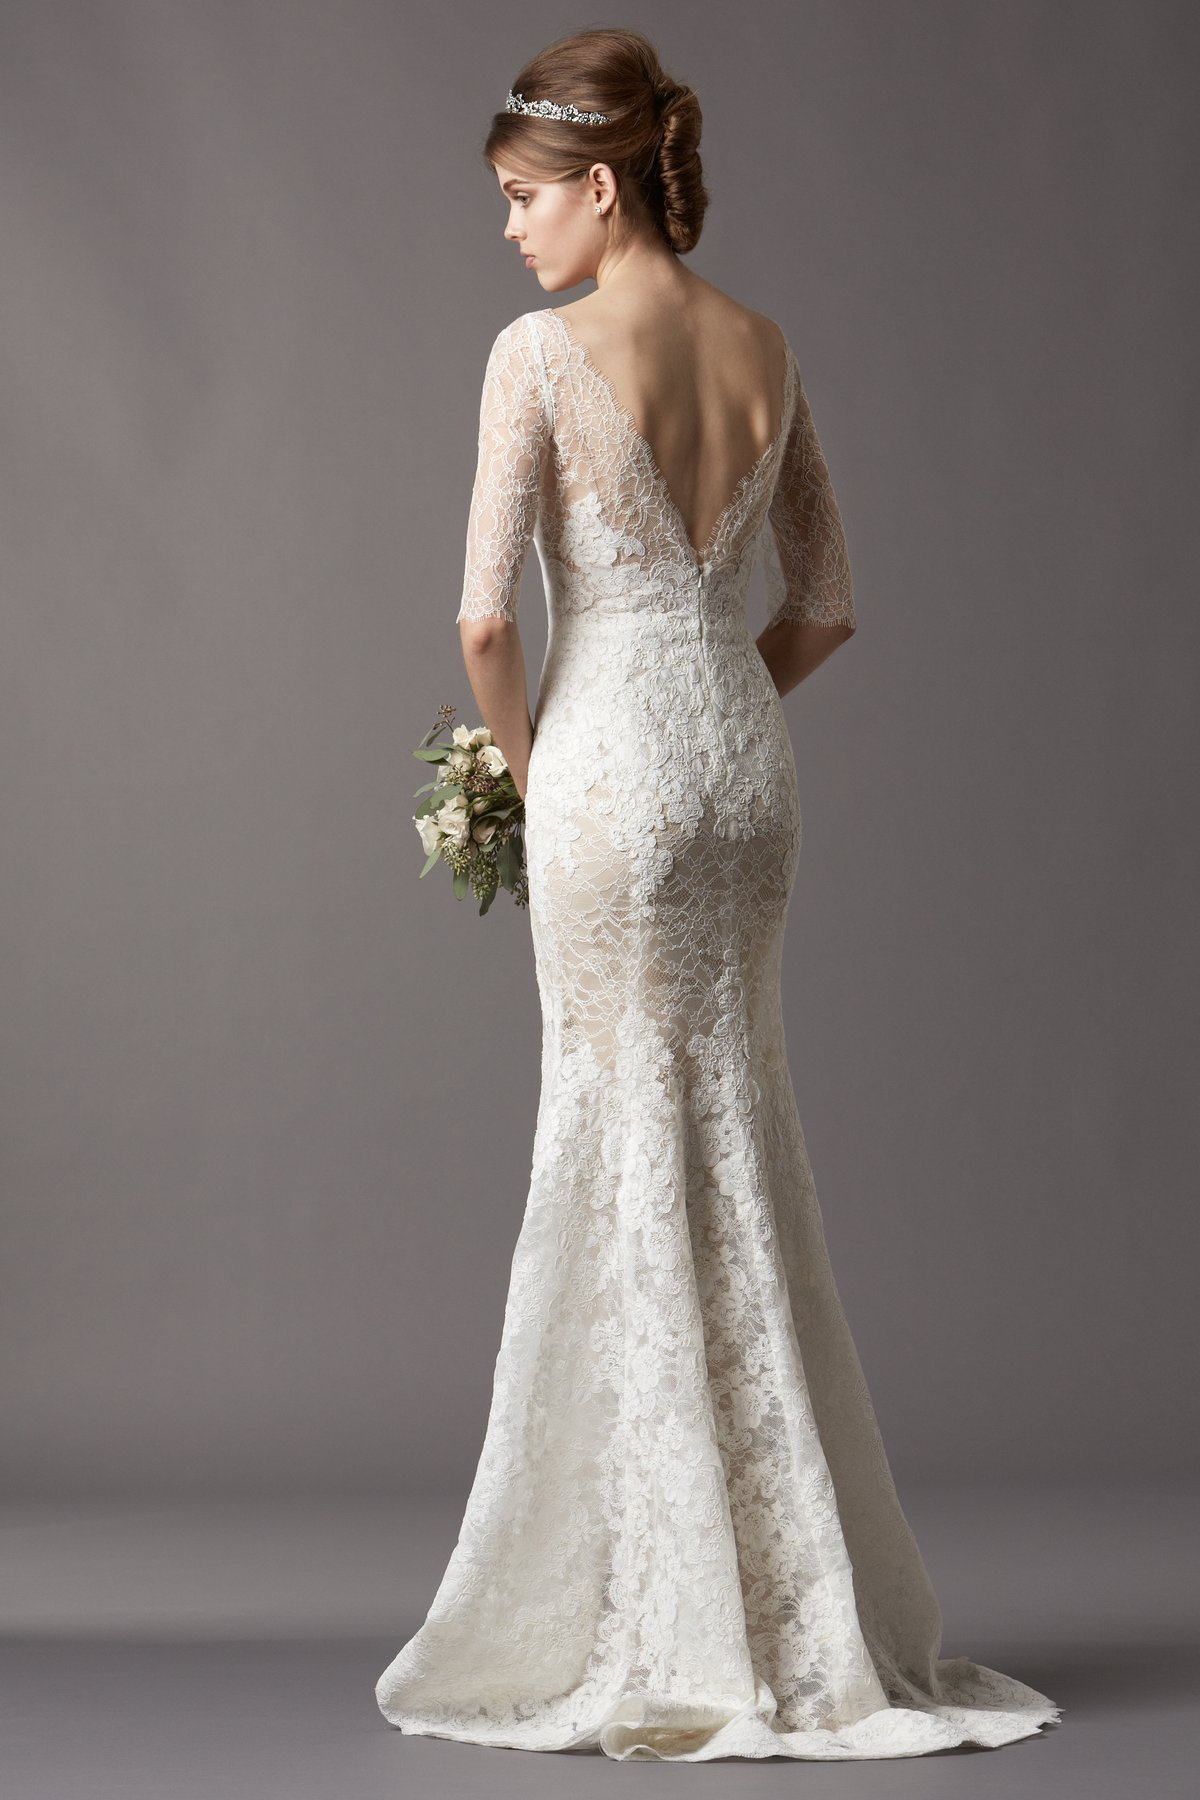 Wedding Dresses With Sleeves Under 500 : Wedding dress trends lace sleeves dipped in